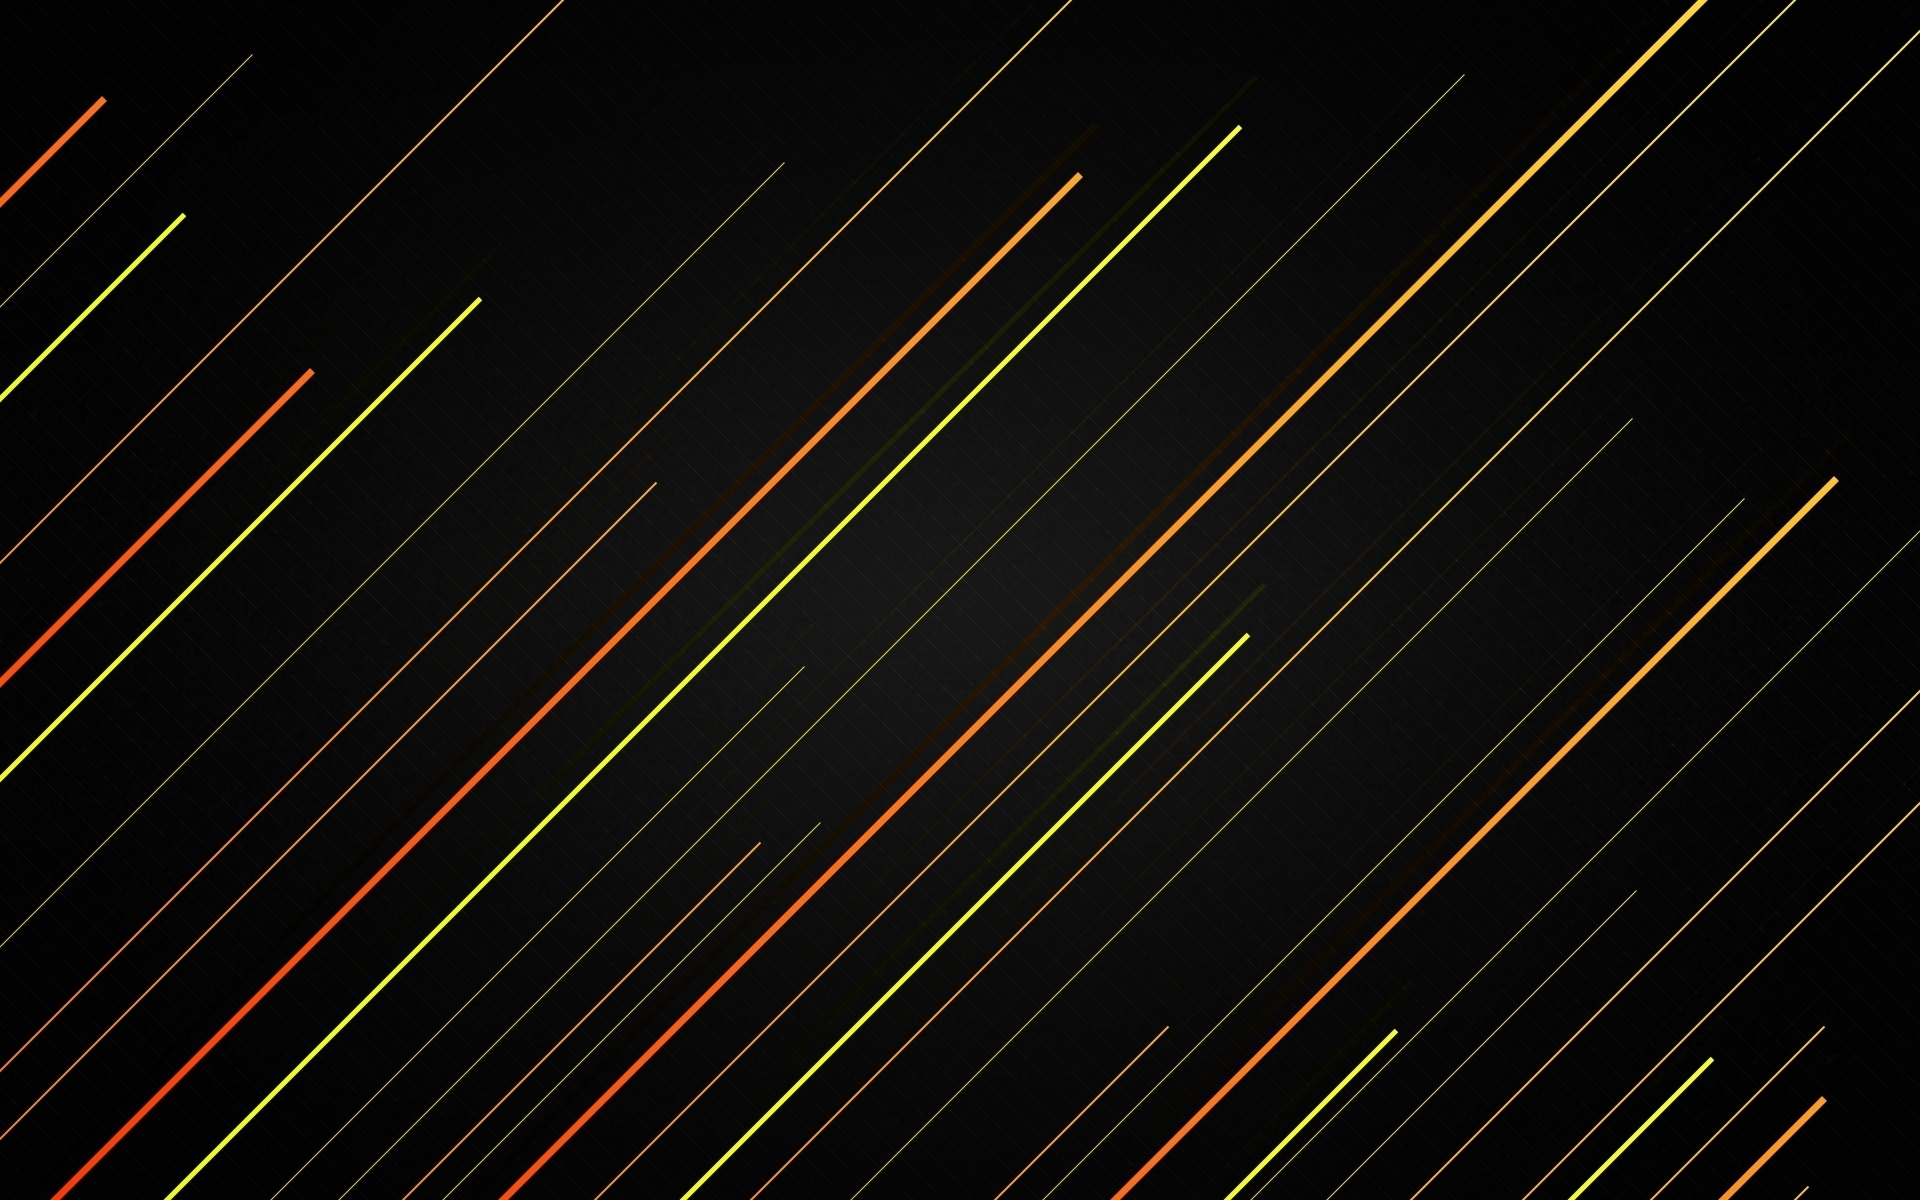 Yellow And Black Background Hd Hd Wallpaper